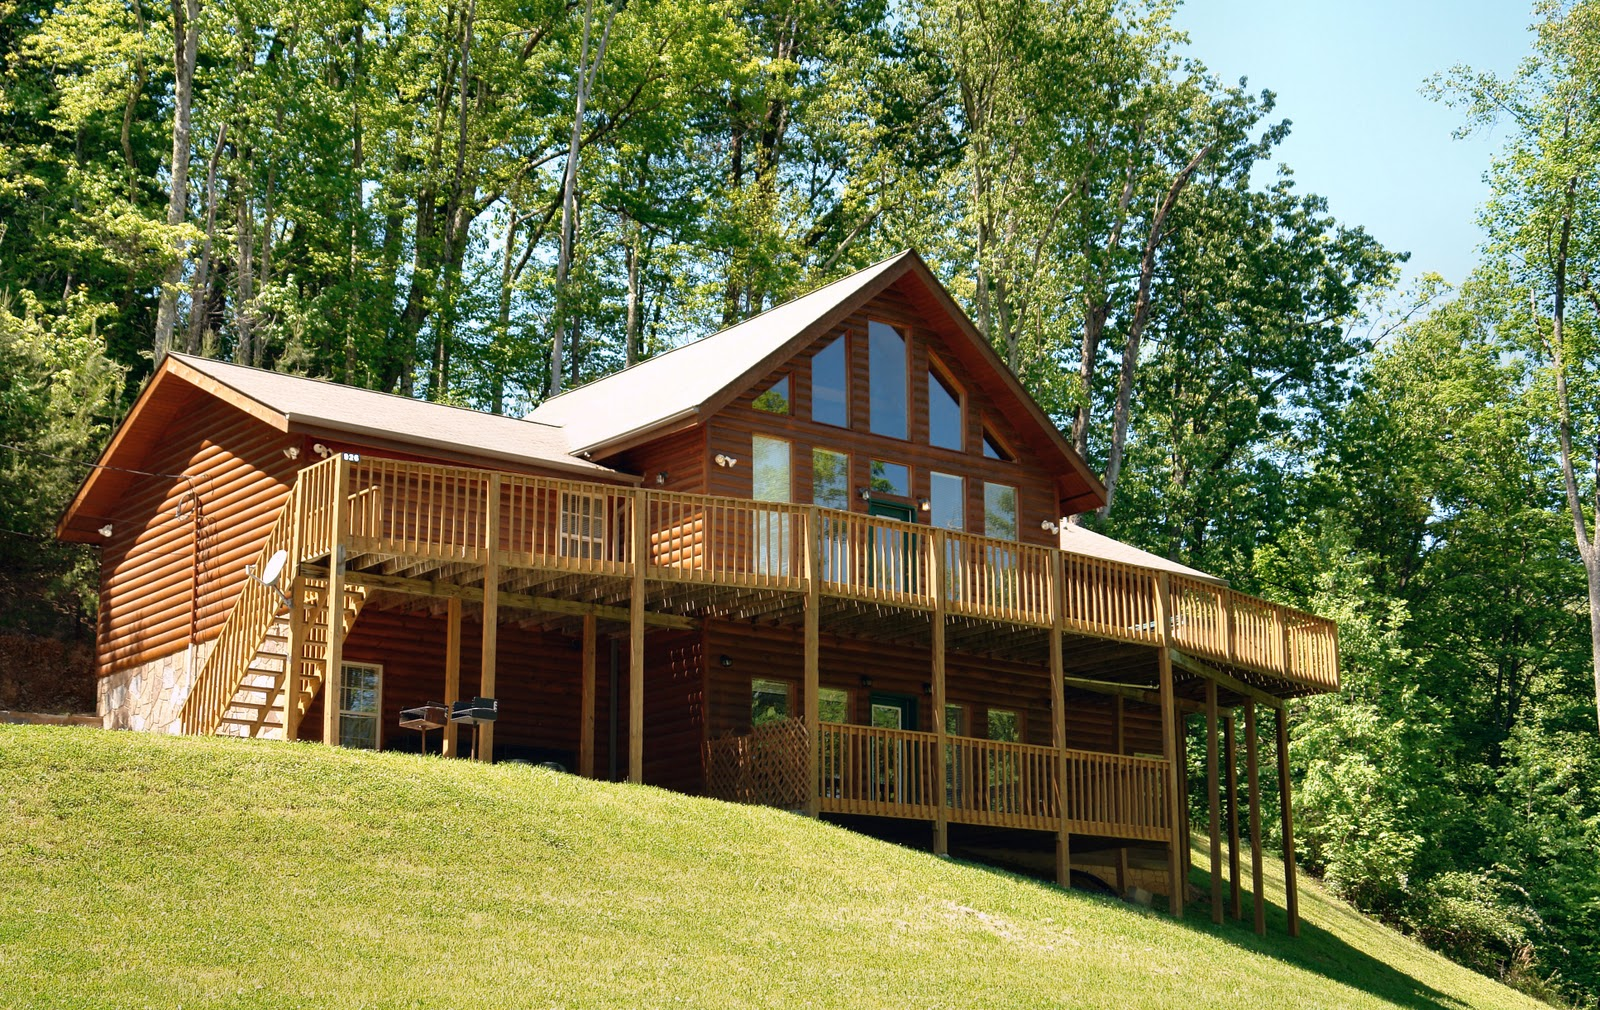 cabin city cheap bryson gatlinburg cabins carolina north tn rentals vacation